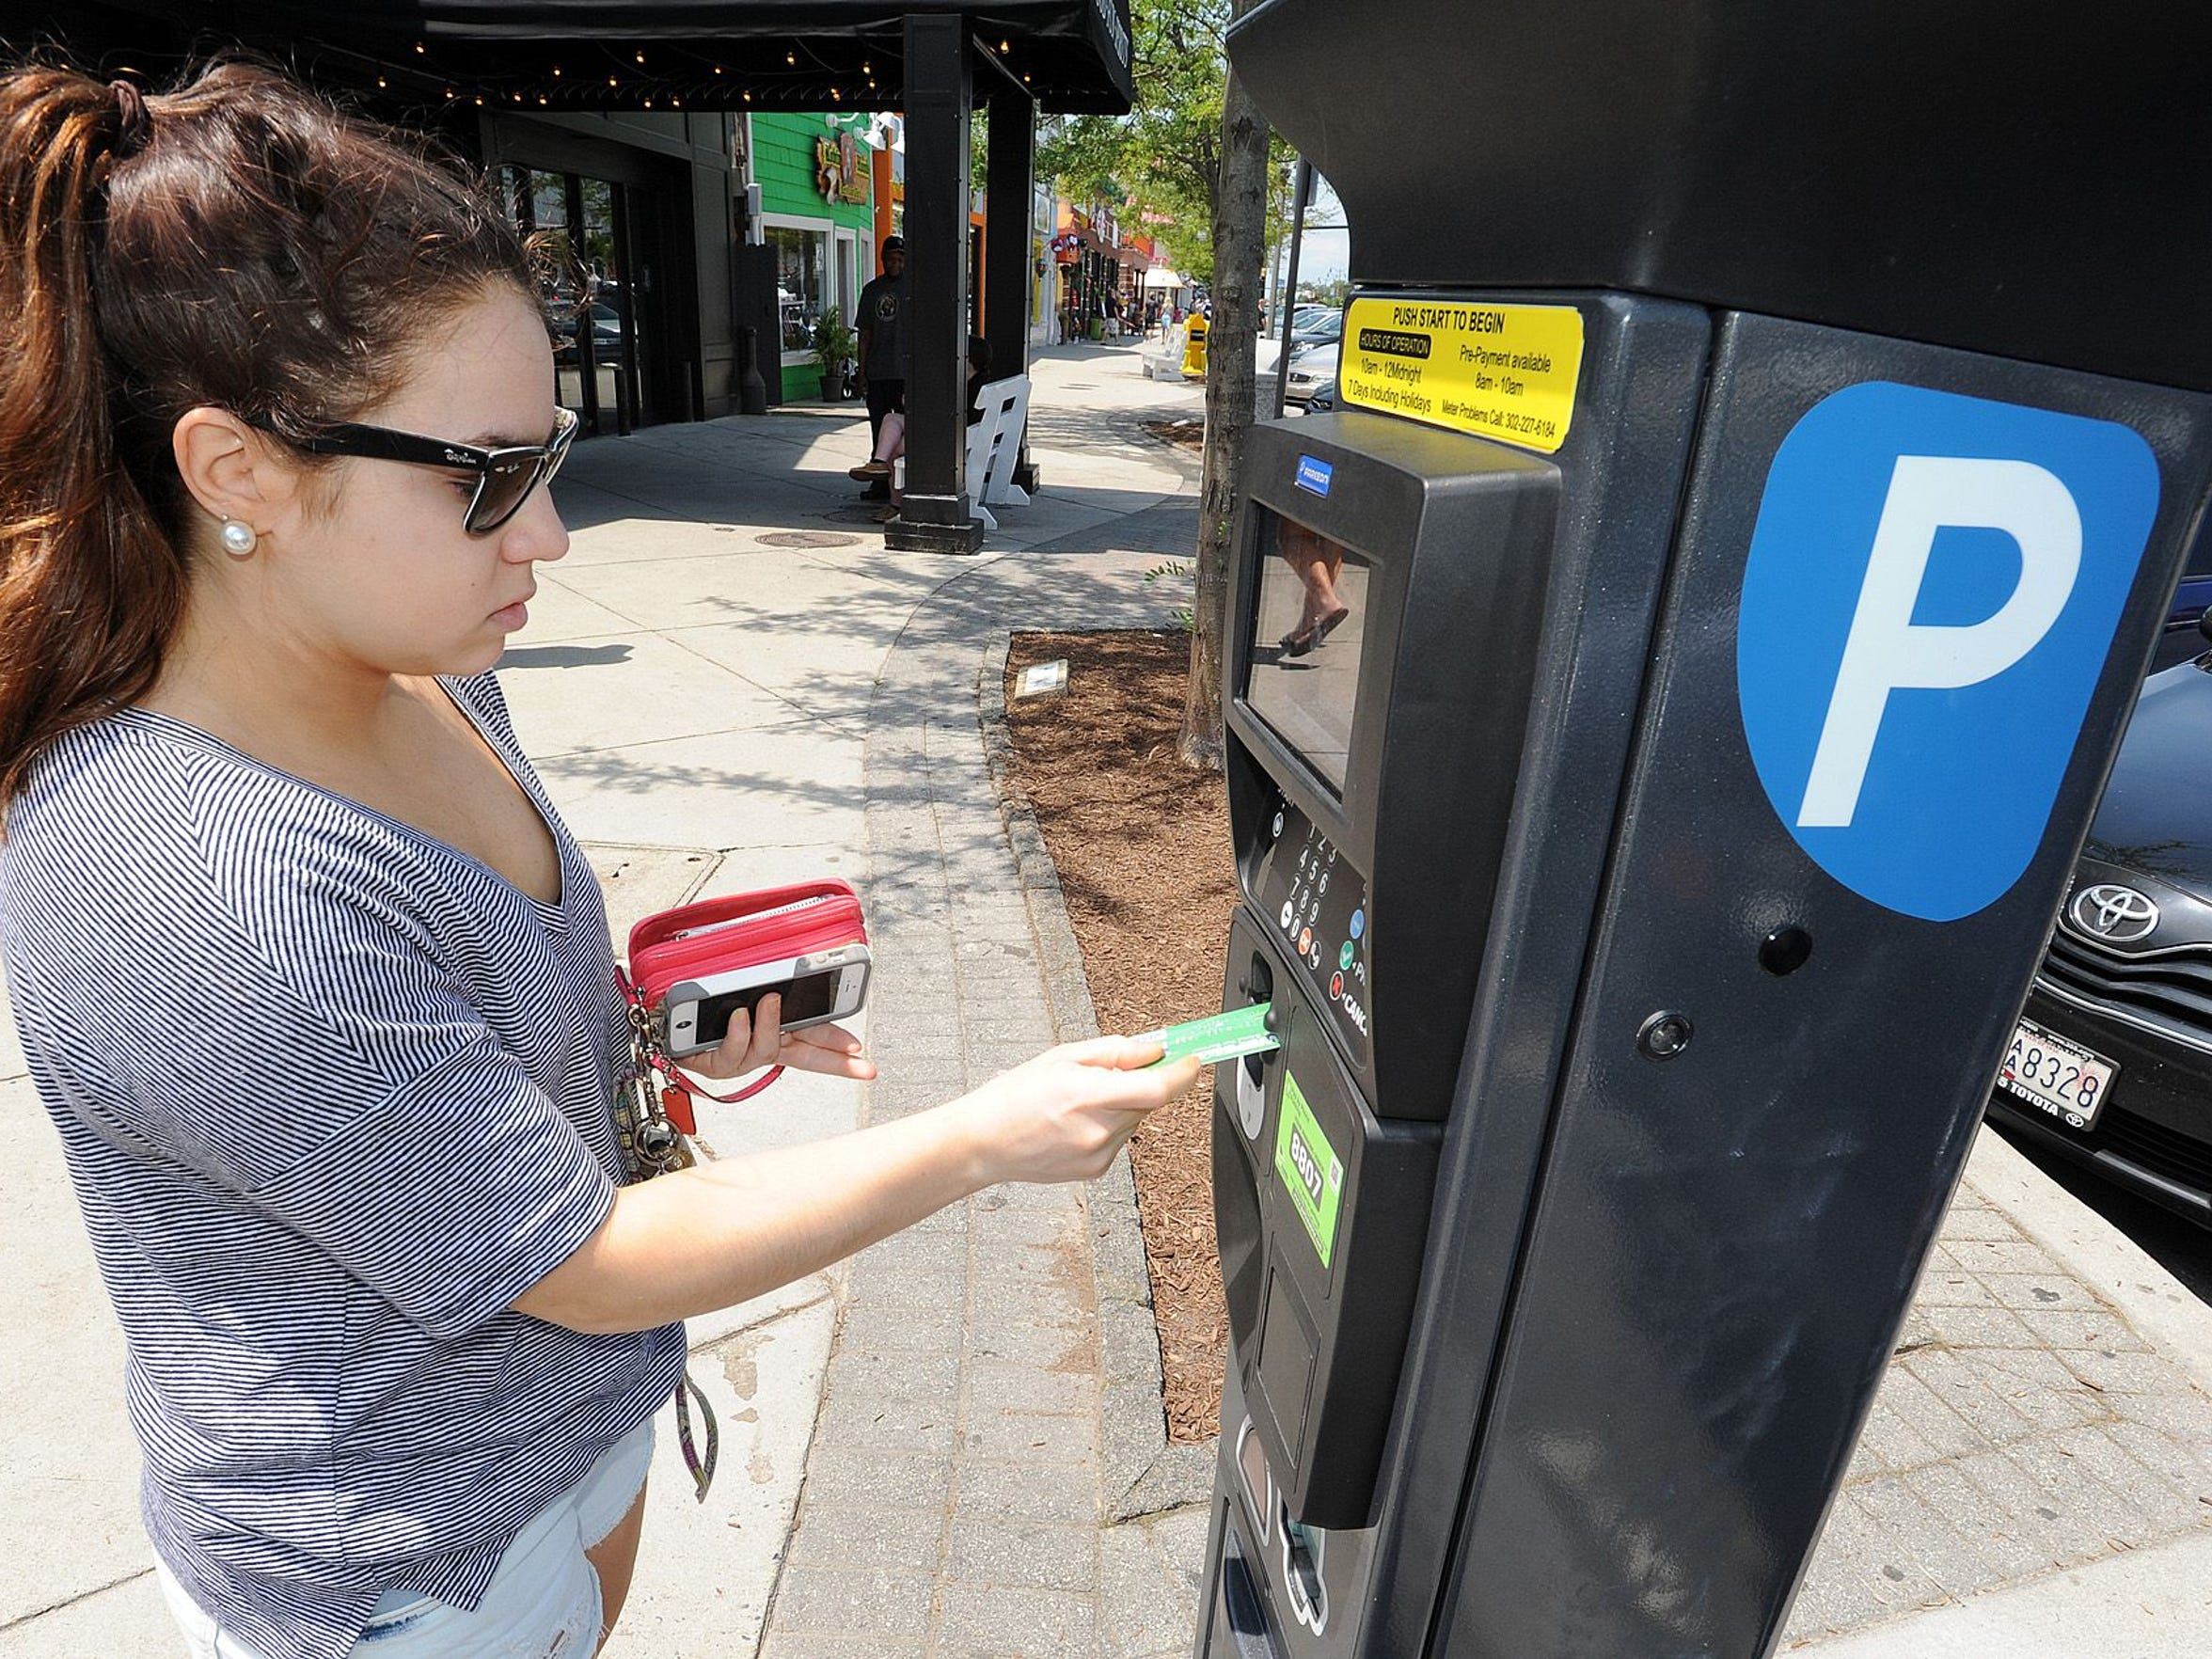 Olivia Marshall of Hockessin pays for parking with her credit card in Rehoboth.